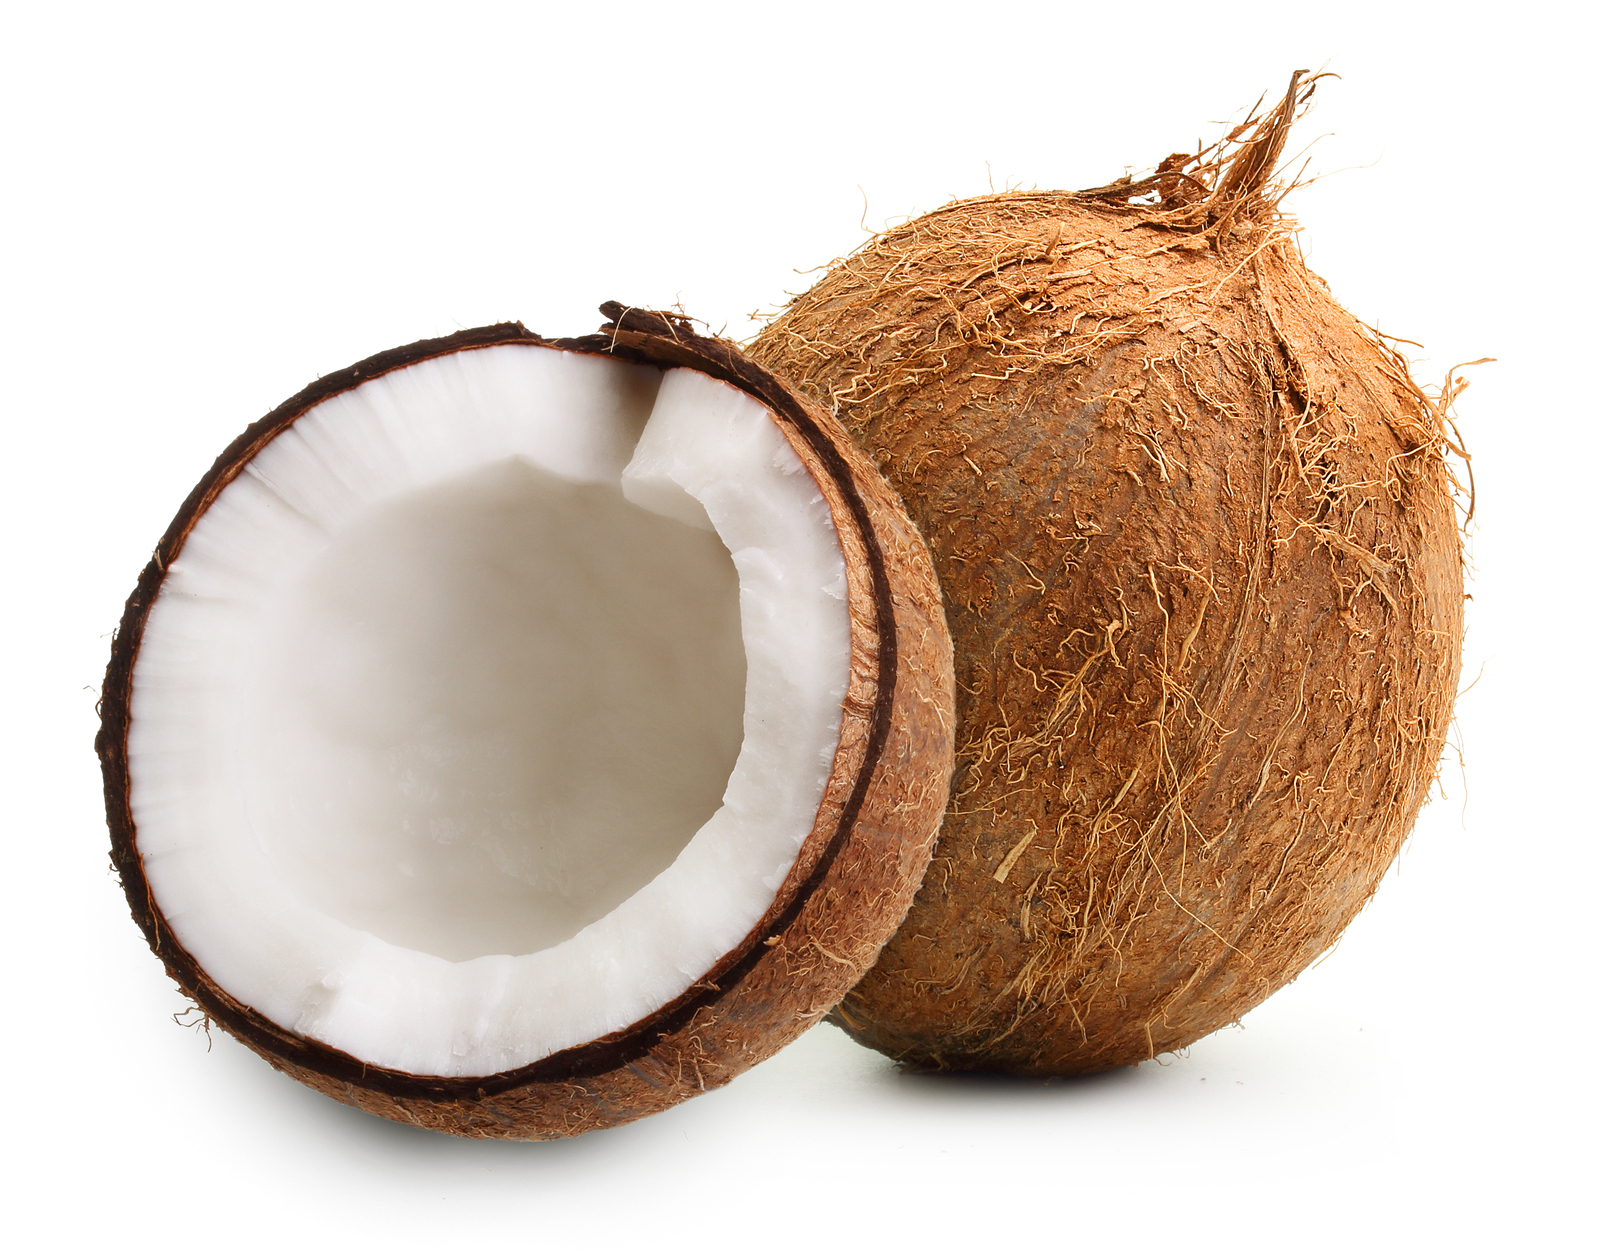 Facts on Fruits: 6 Health Benefits of Coconut